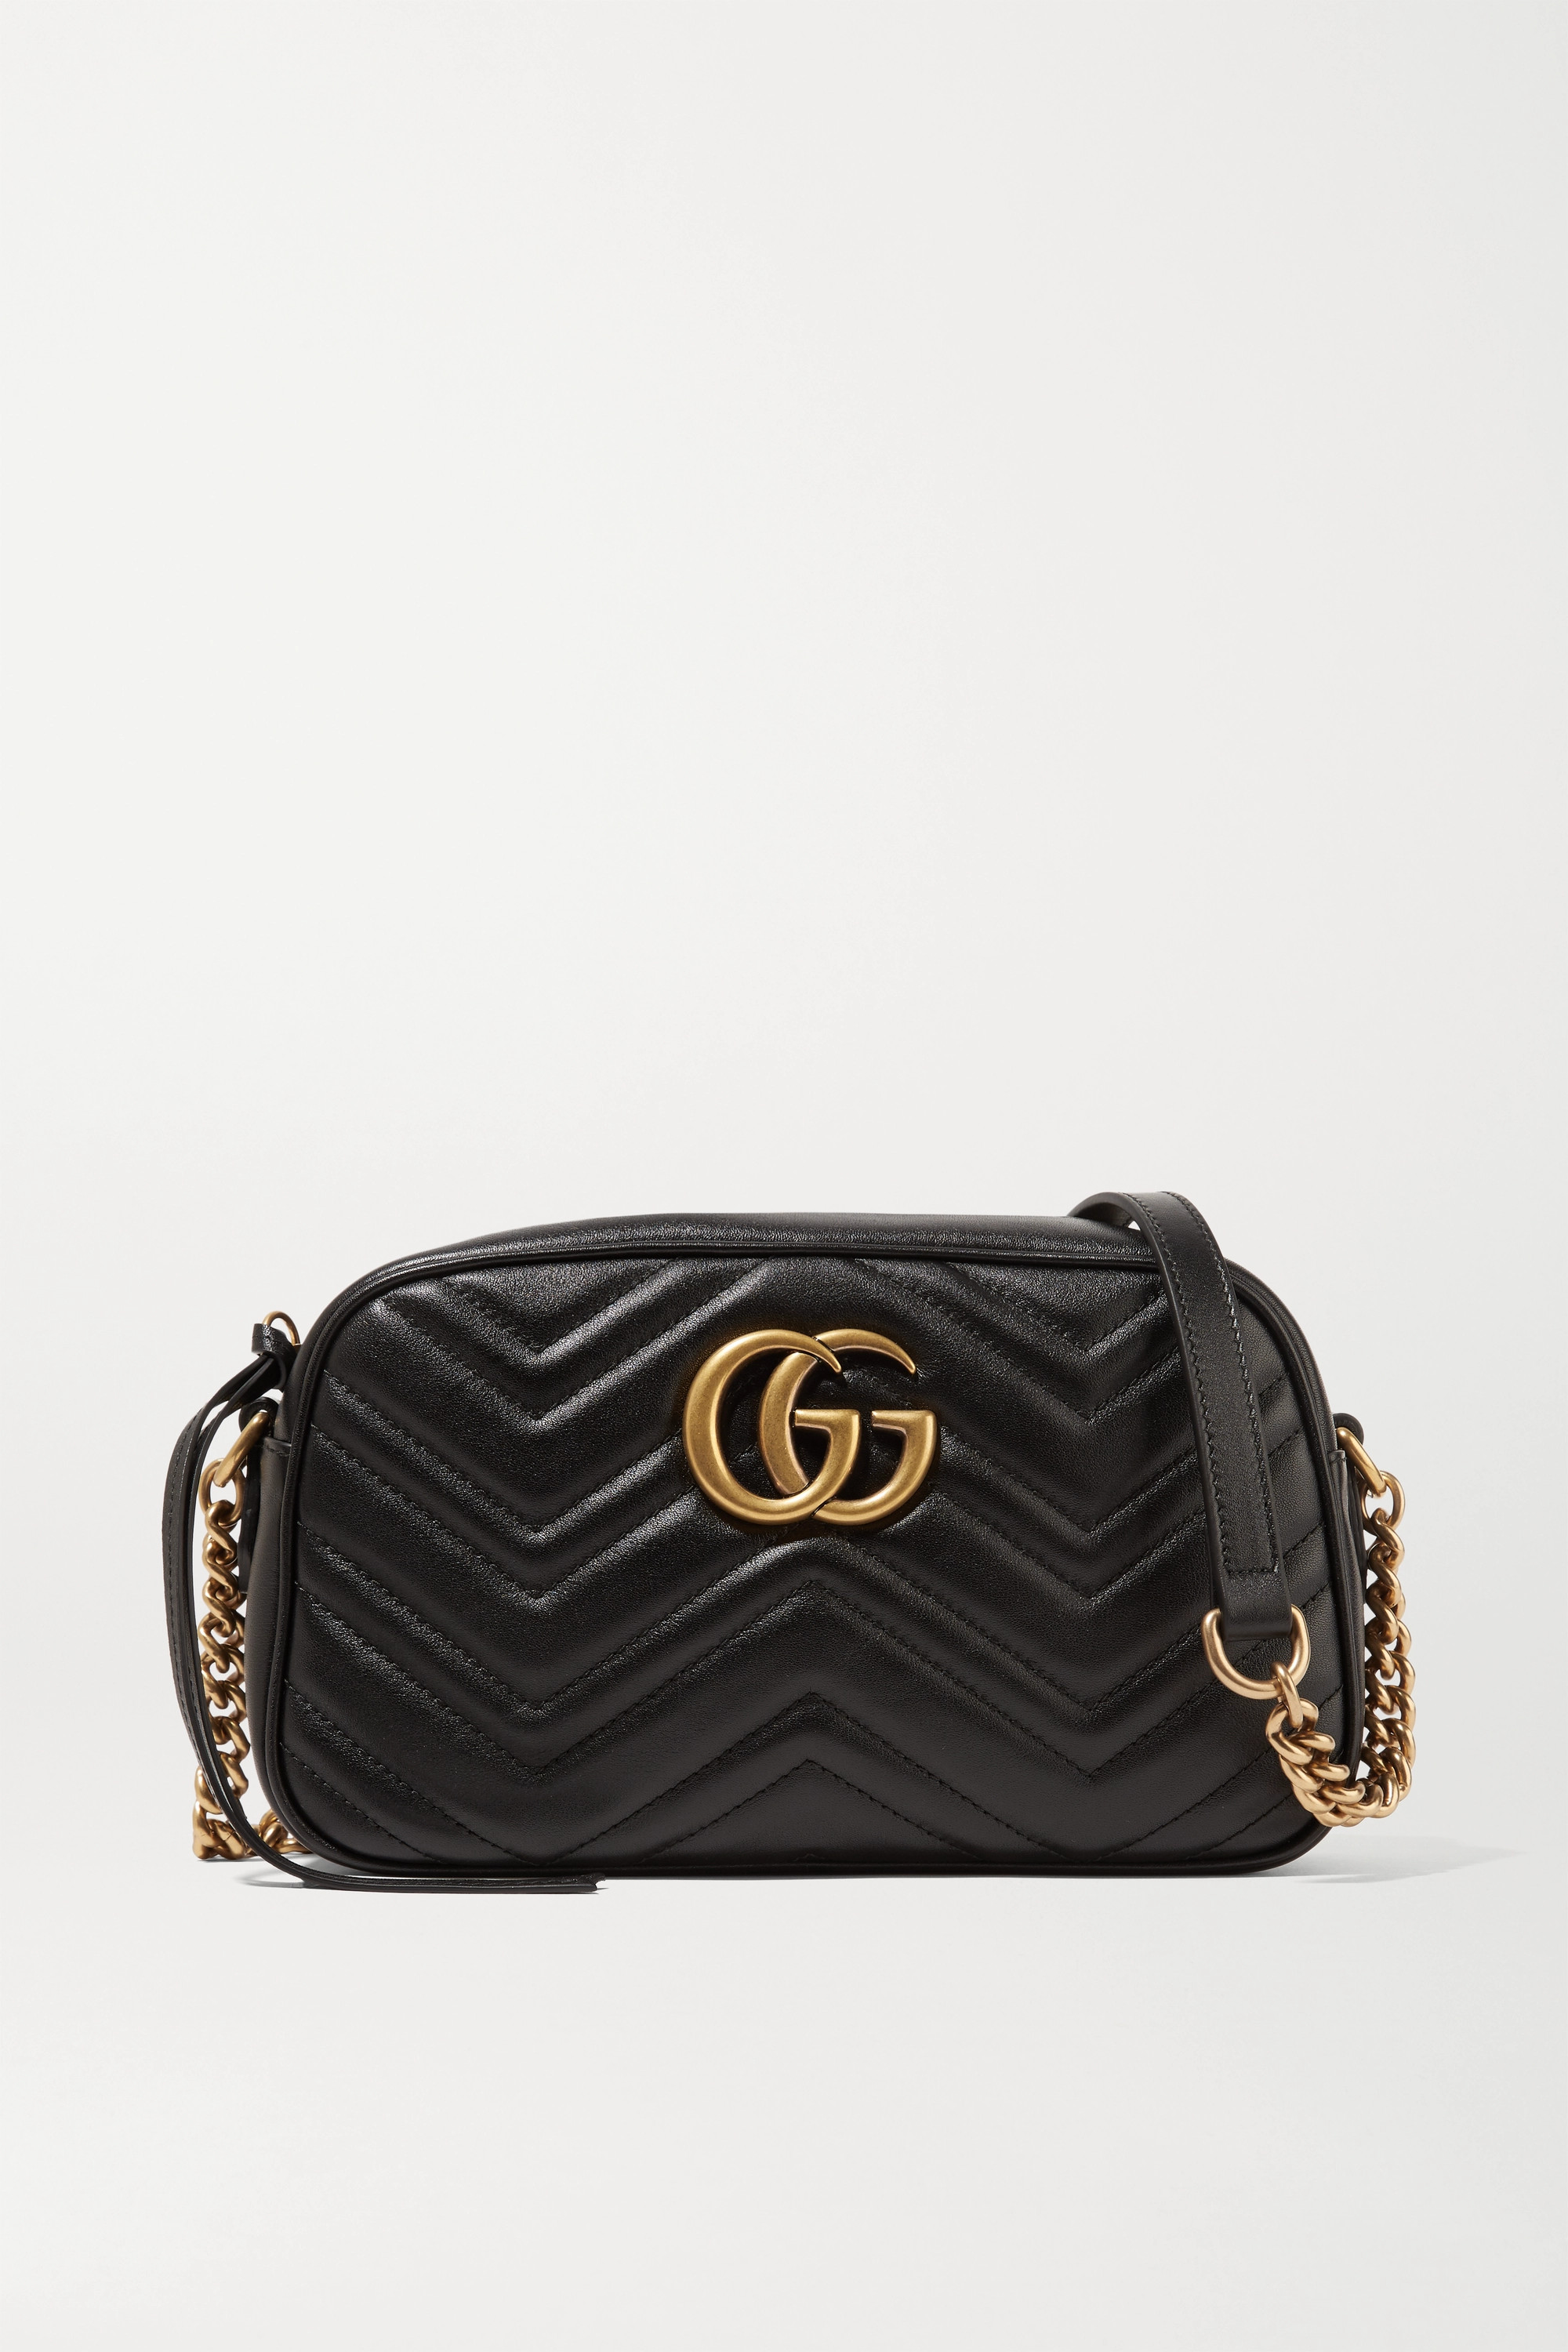 GUCCI GG Marmont Camera small quilted leather shoulder bag